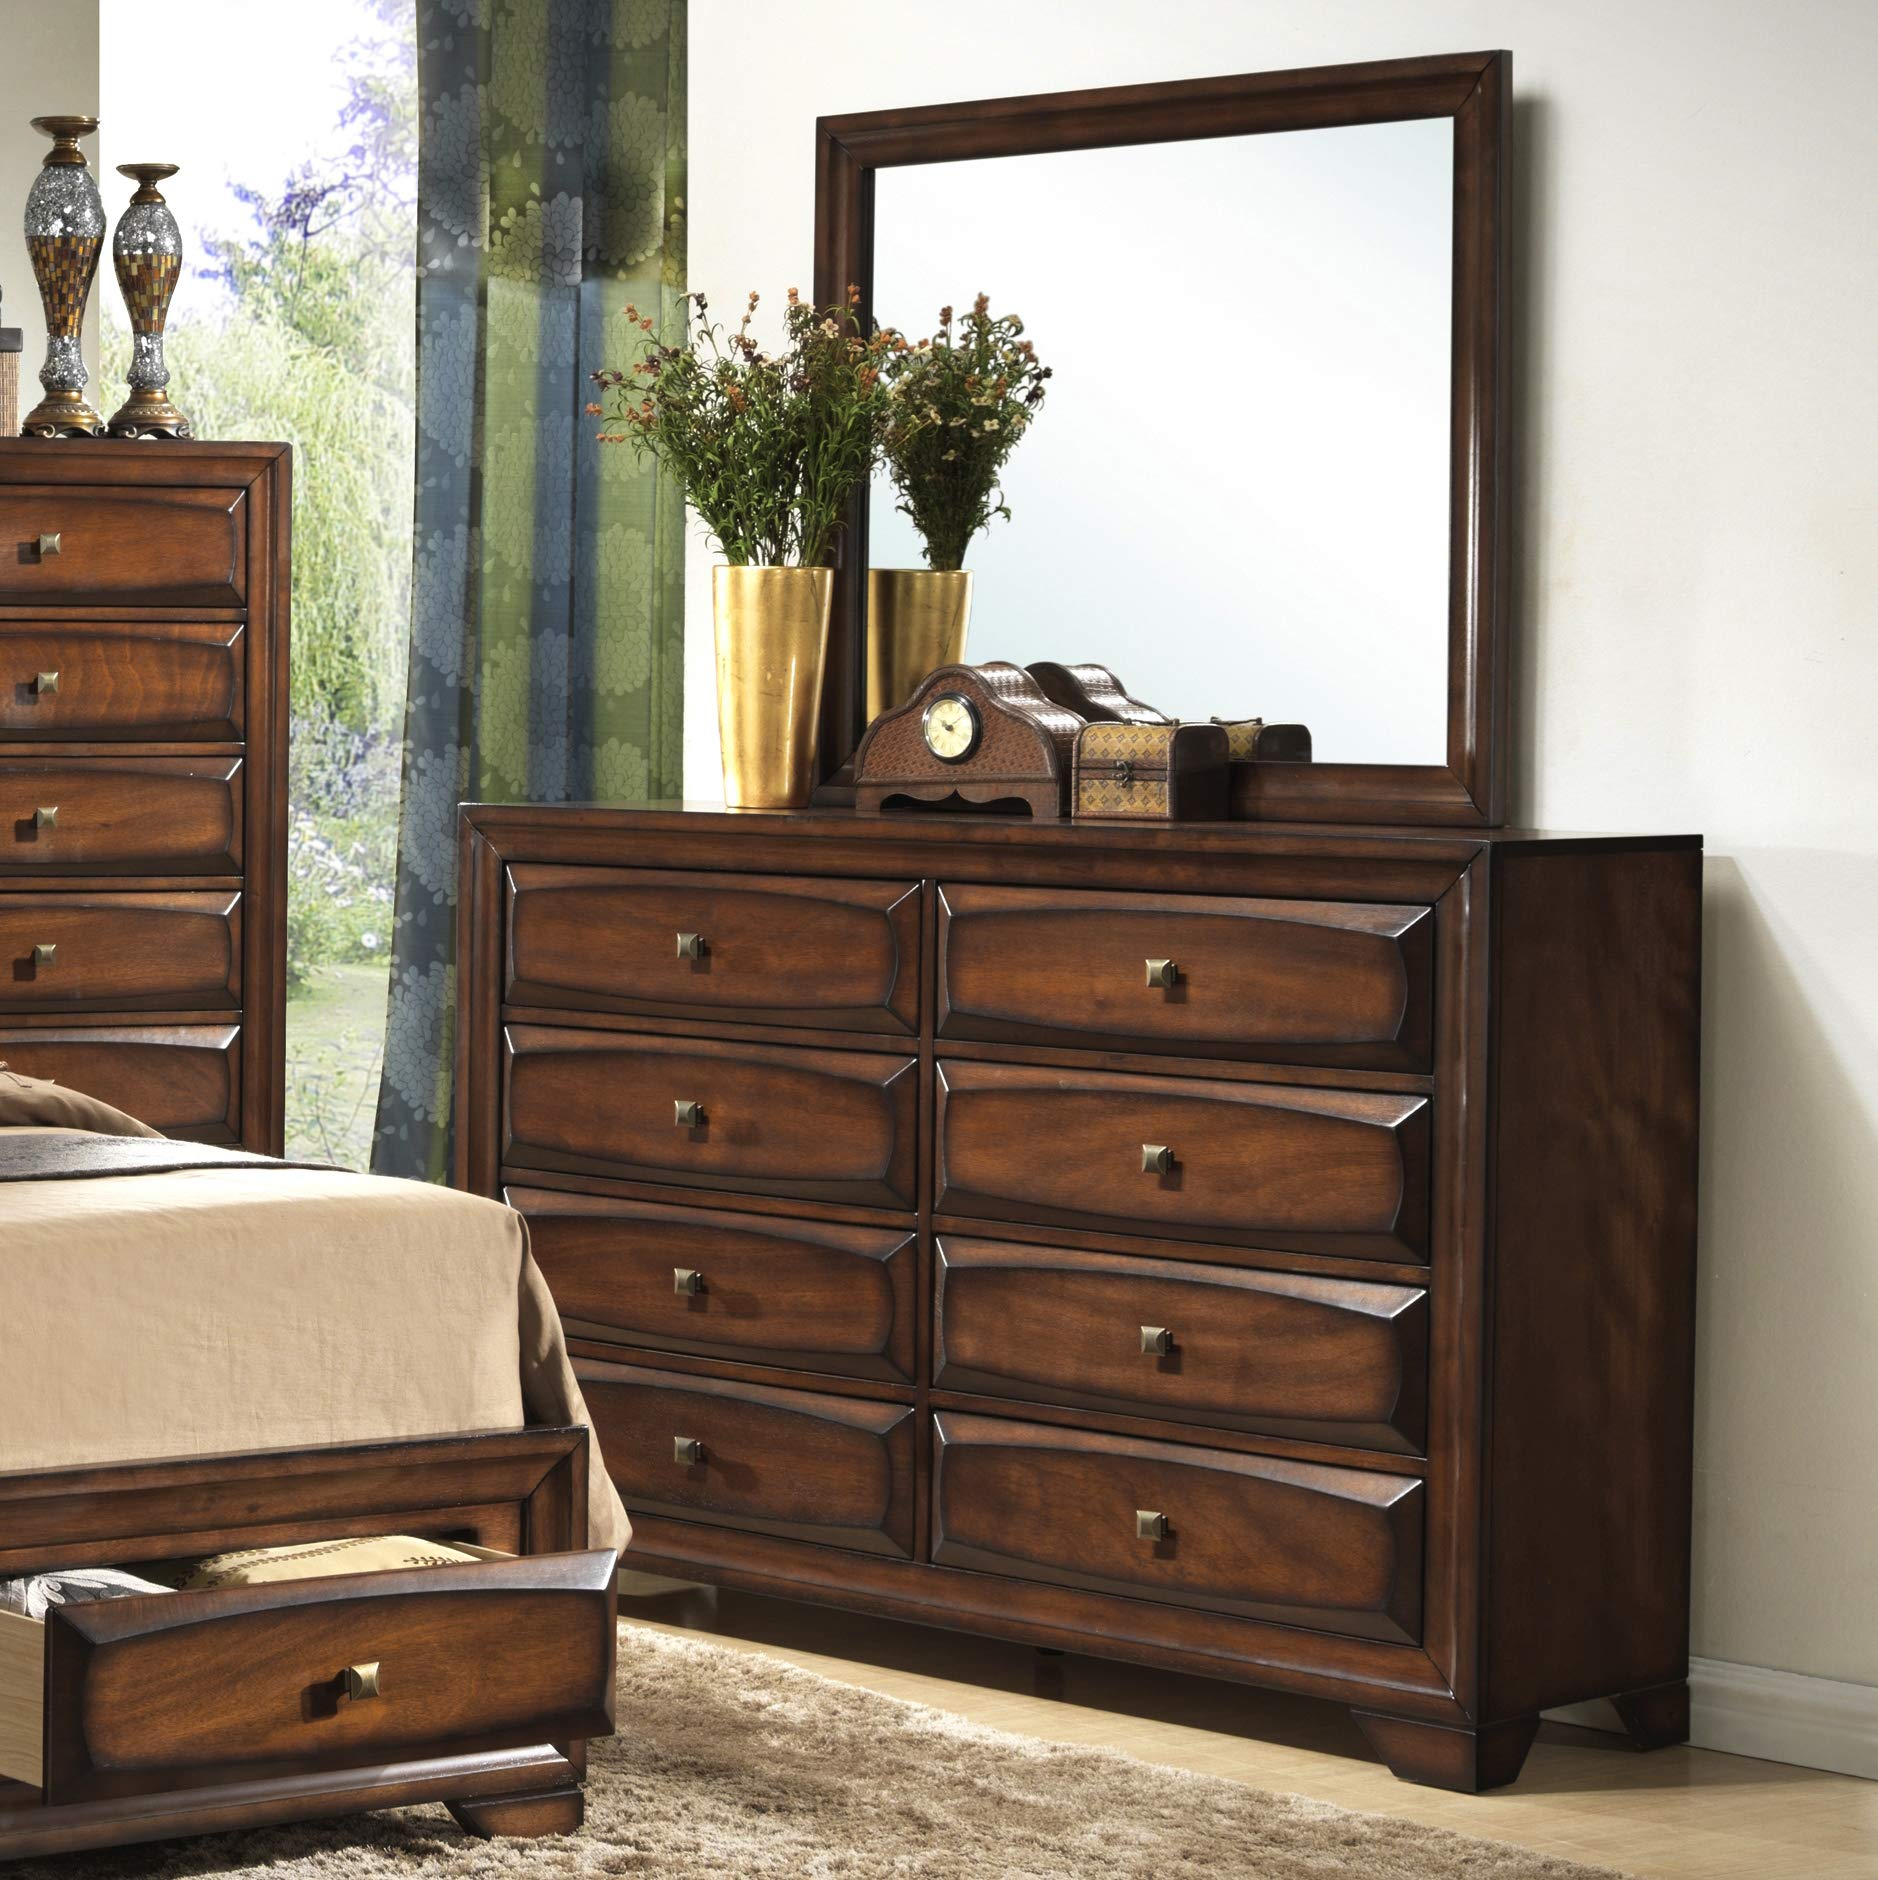 Roundhill Furniture Oakland 139 Wood Drawers Dresser and Mirror, Antique Oak Finish by Roundhill Furniture